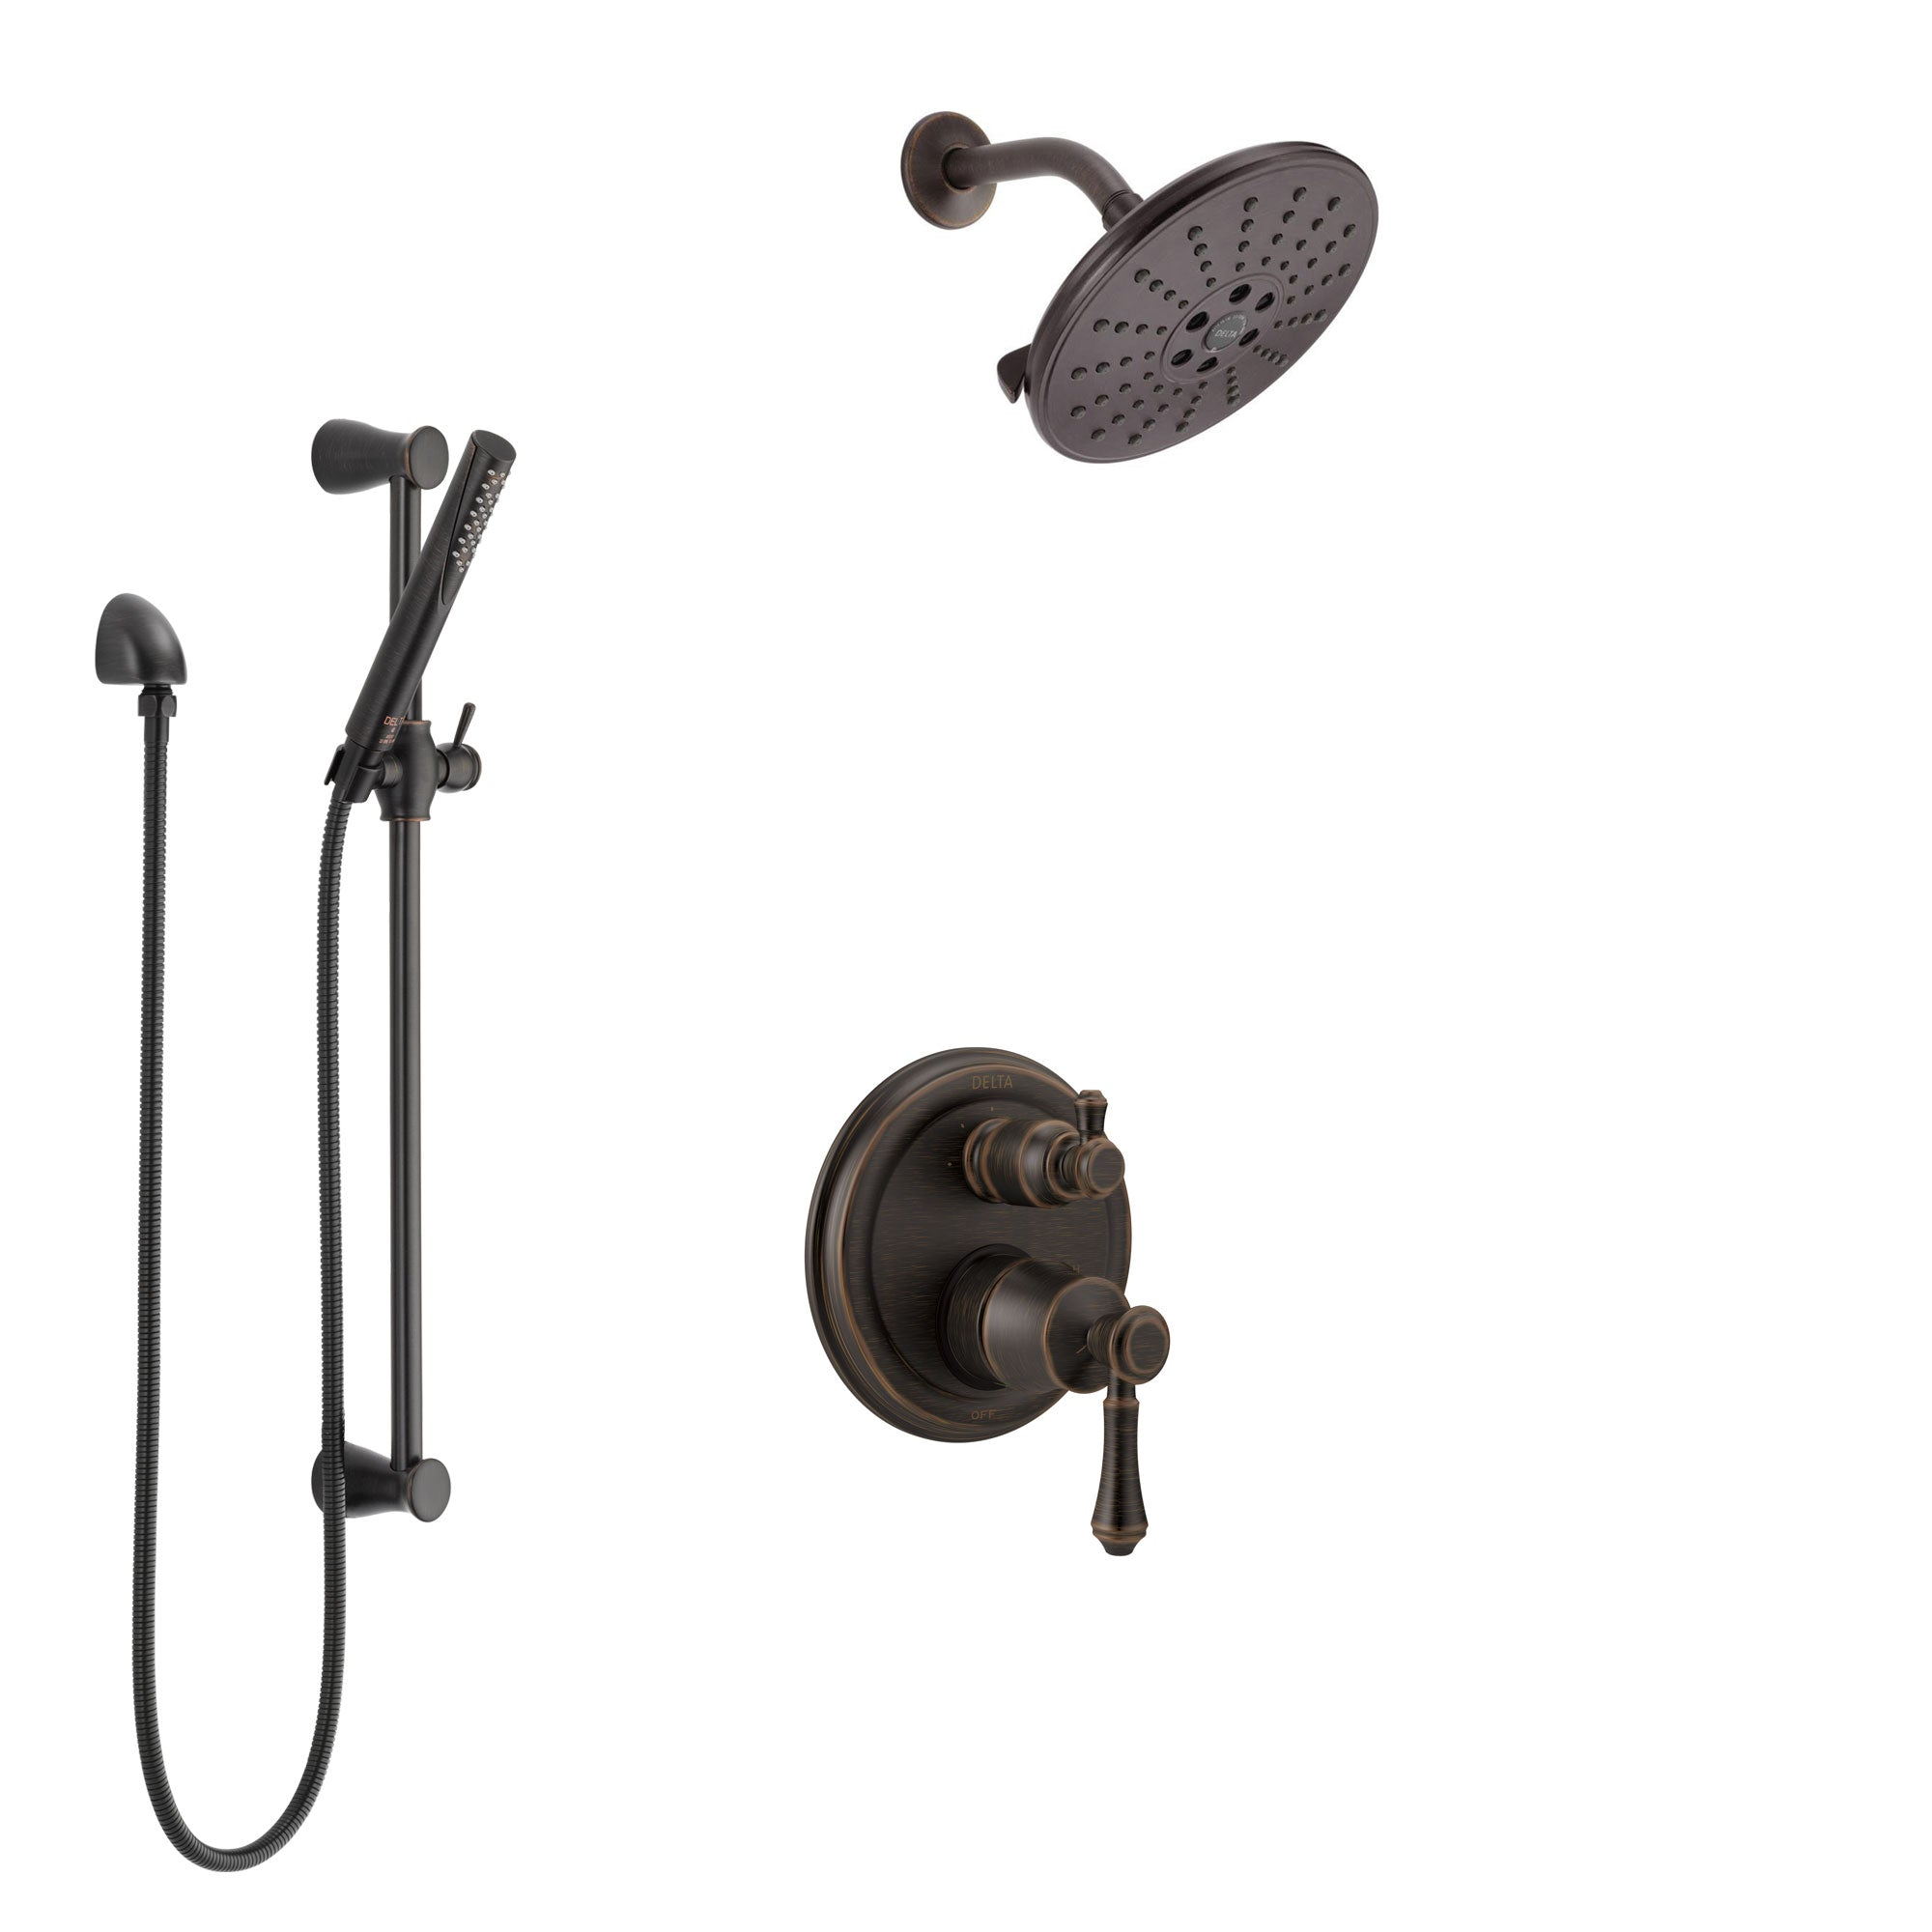 Delta Cassidy Venetian Bronze Shower System with Control Handle, Integrated 3-Setting Diverter, Showerhead, and Hand Shower with Slidebar SS24897RB10